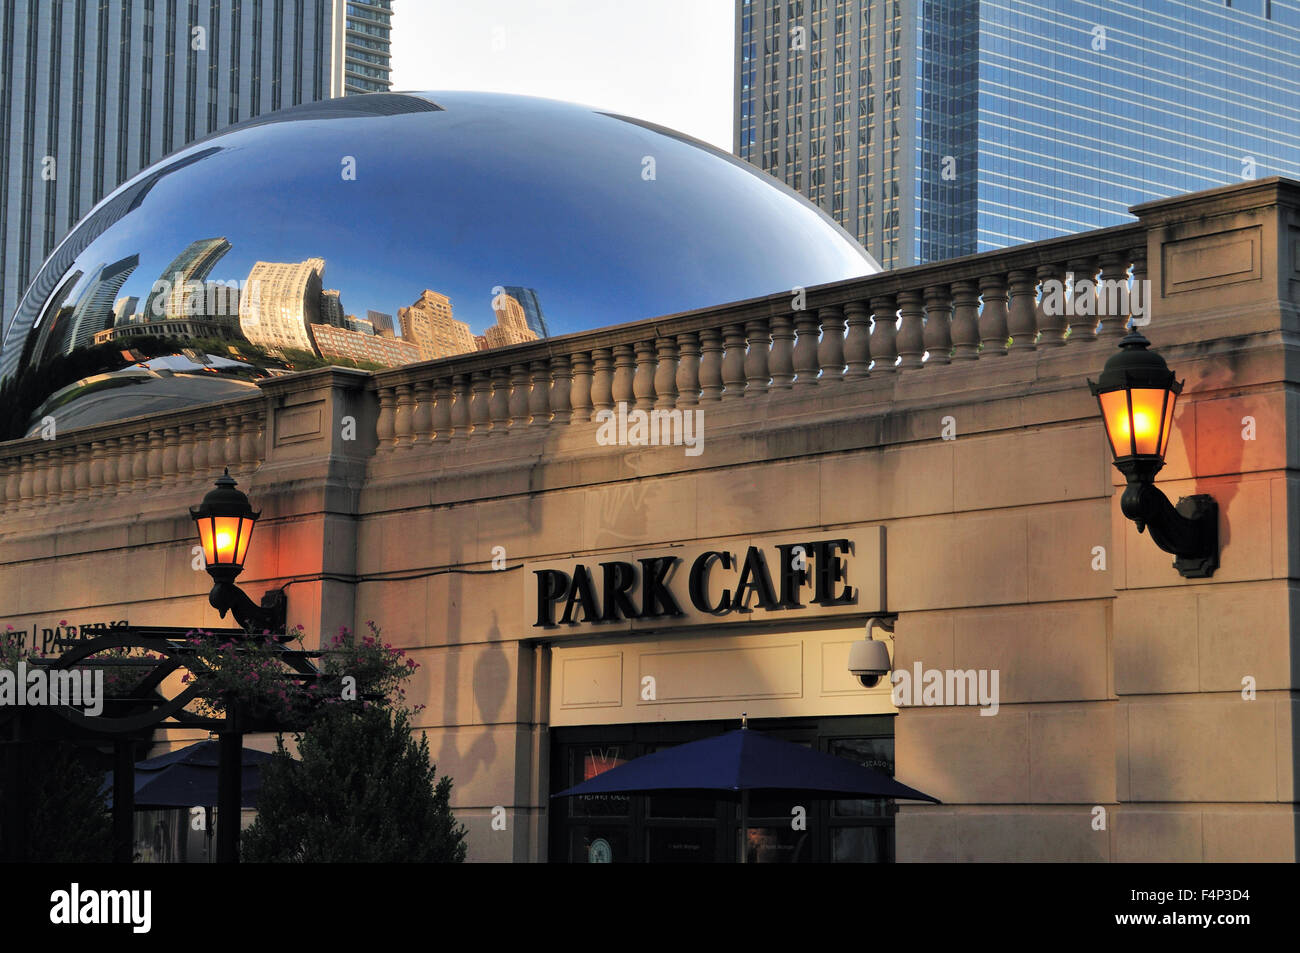 Cloud Gate (also known as The Bean and The Kidney Bean) sculpture sits above the Park Cafe in Chicago's Millennium - Stock Image